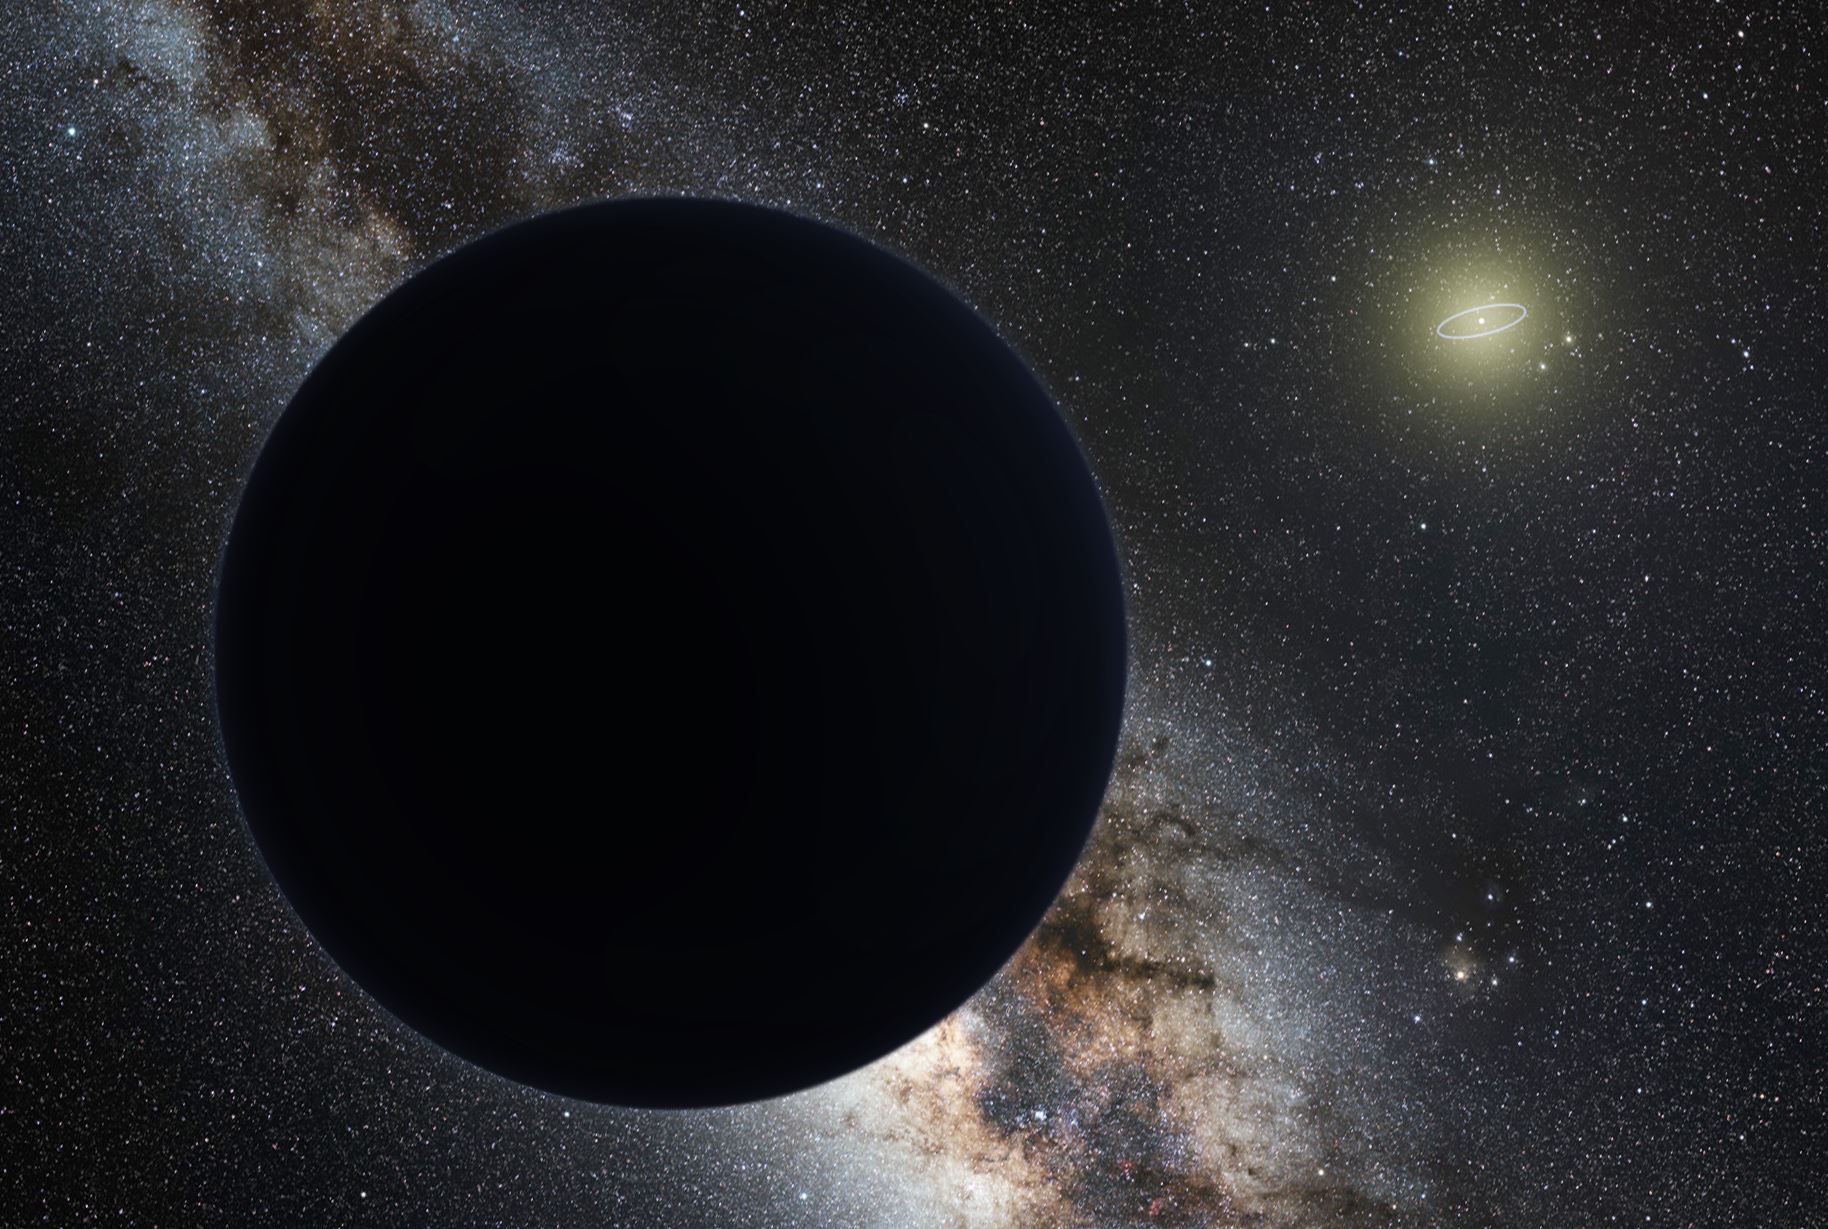 An artist's impression of planet 9, showing the rest of our solar system in the far distance - Image Credit:  nagualdesign; Tom Ruen / ESO via Wikimedia Commons